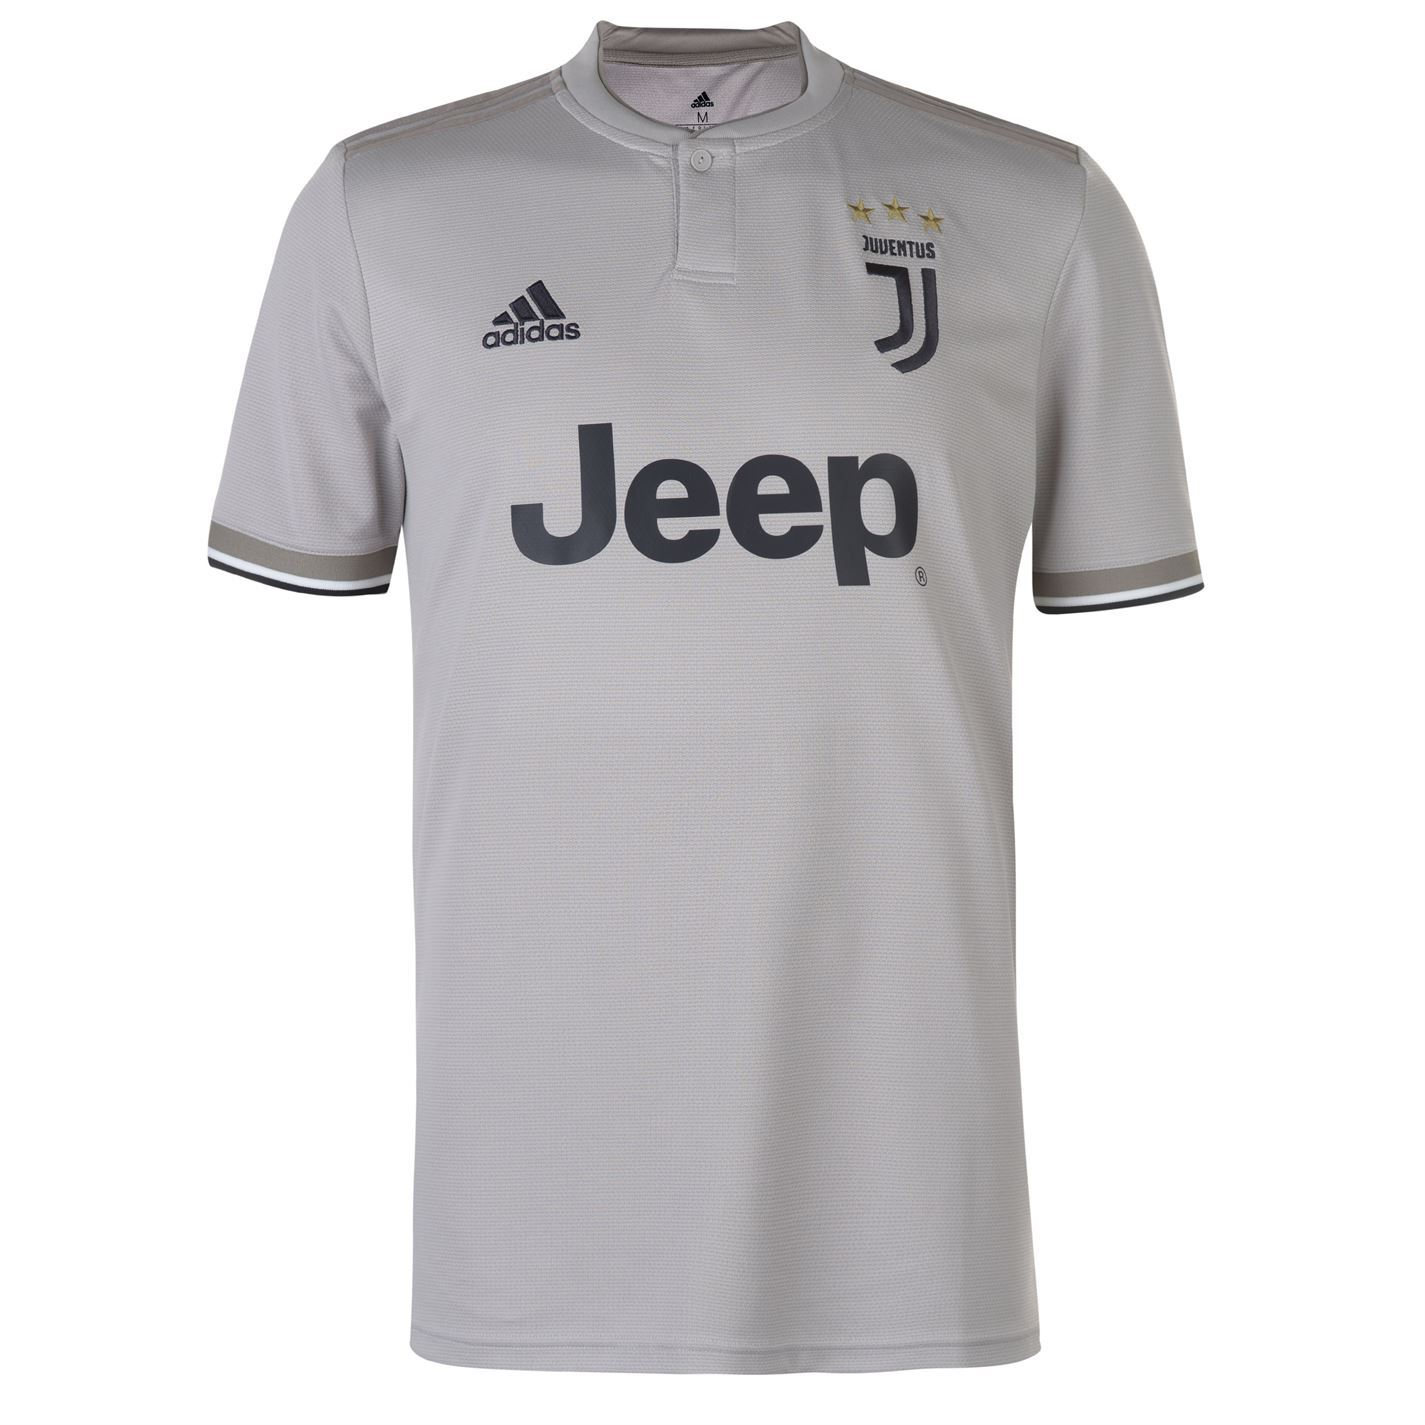 2dcc76116 ... adidas Juventus Away Jersey 2018 2019 Mens Grey Football Soccer Fan  Shirt Top ...